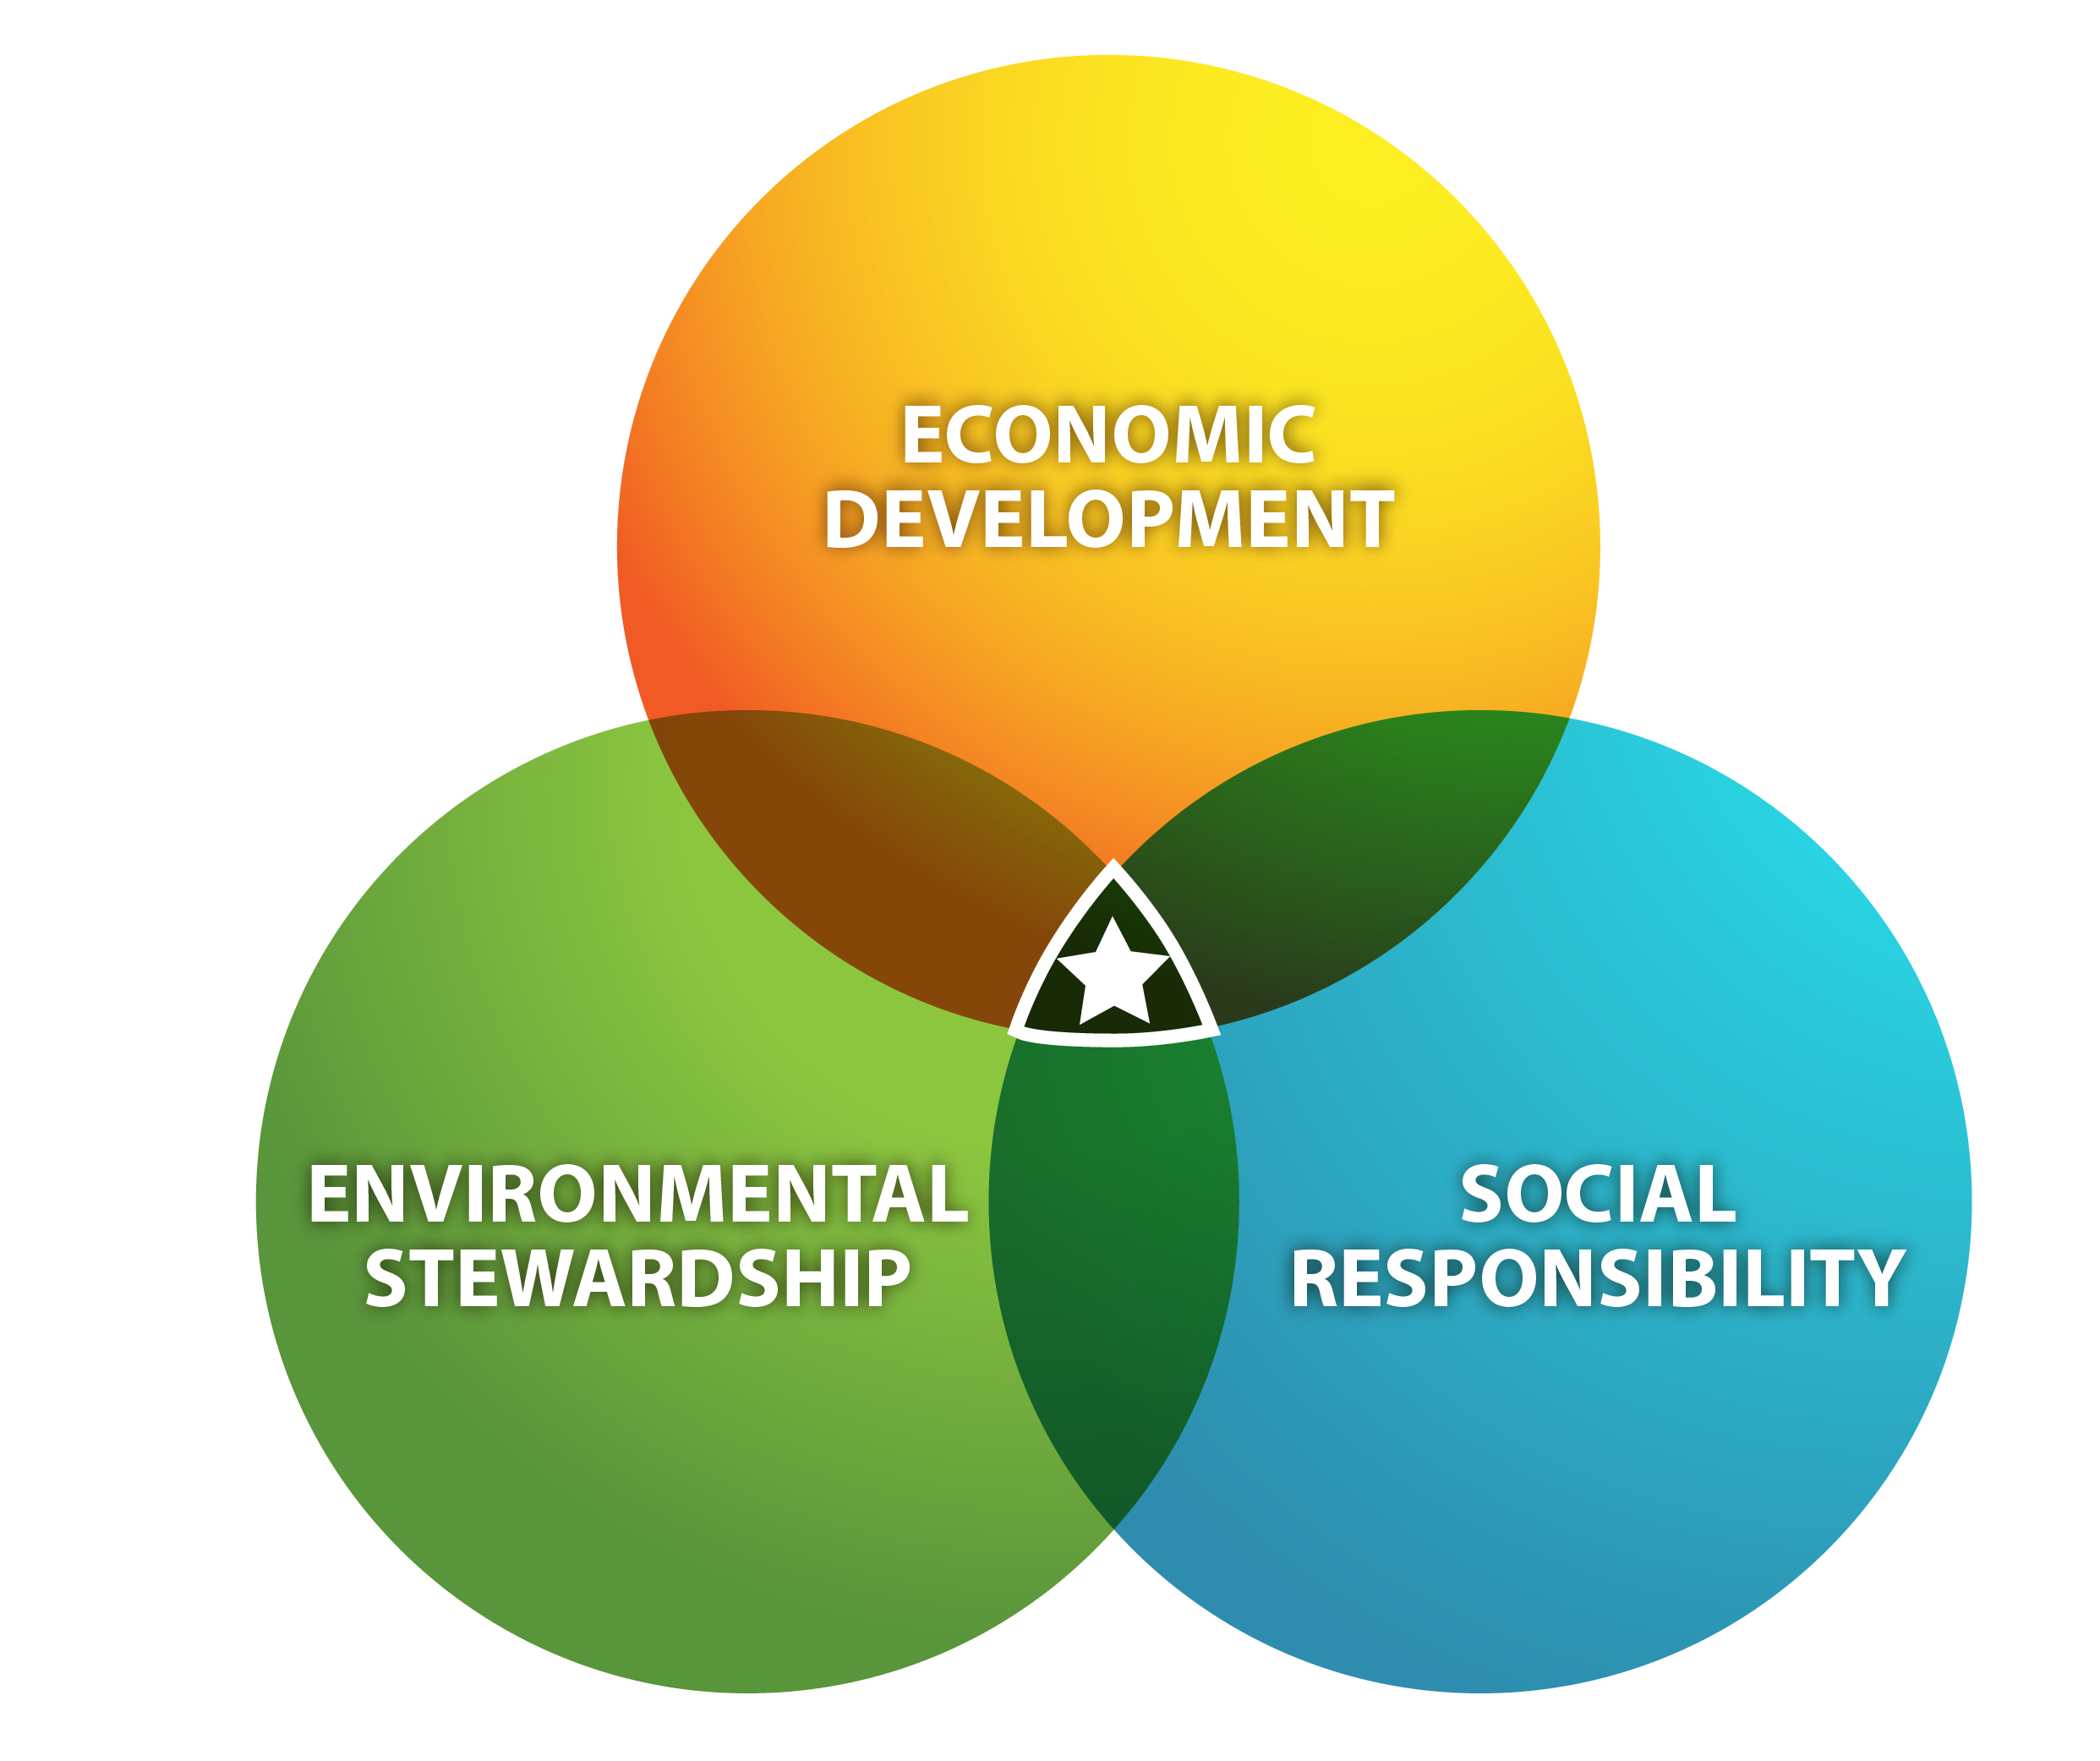 sustainability definition Definition of sustainability in the audioenglishorg dictionary meaning of sustainability what does sustainability mean proper usage and pronunciation (in phonetic transcription) of the word sustainability.